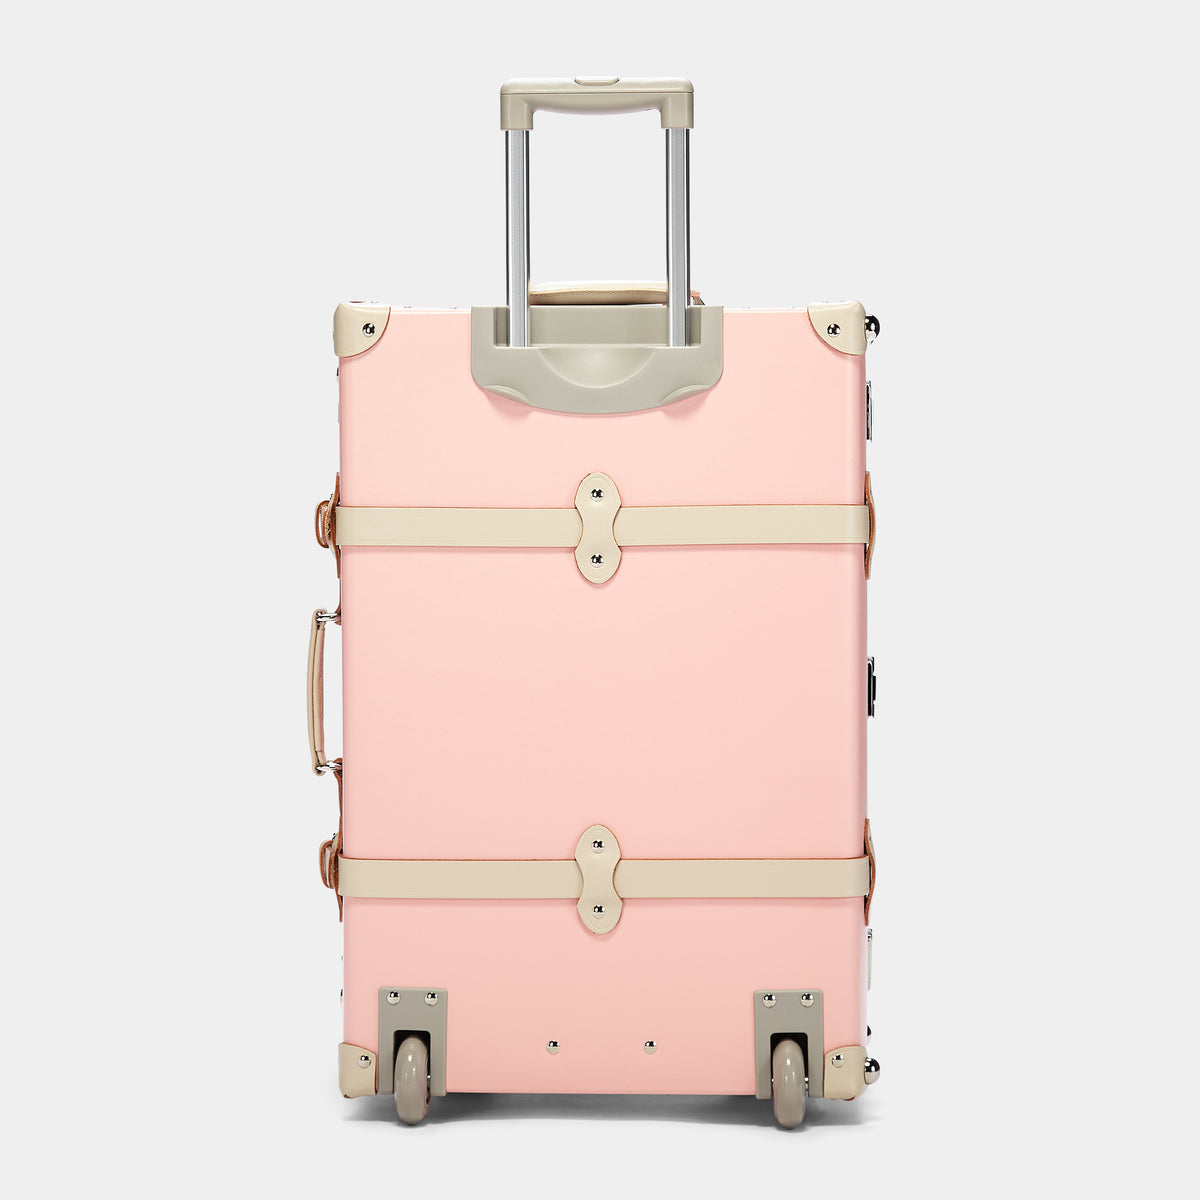 The Botanist Stowaway in Pink - Vintage-Inspired Suitcase - Exterior Back with Extendable Handle